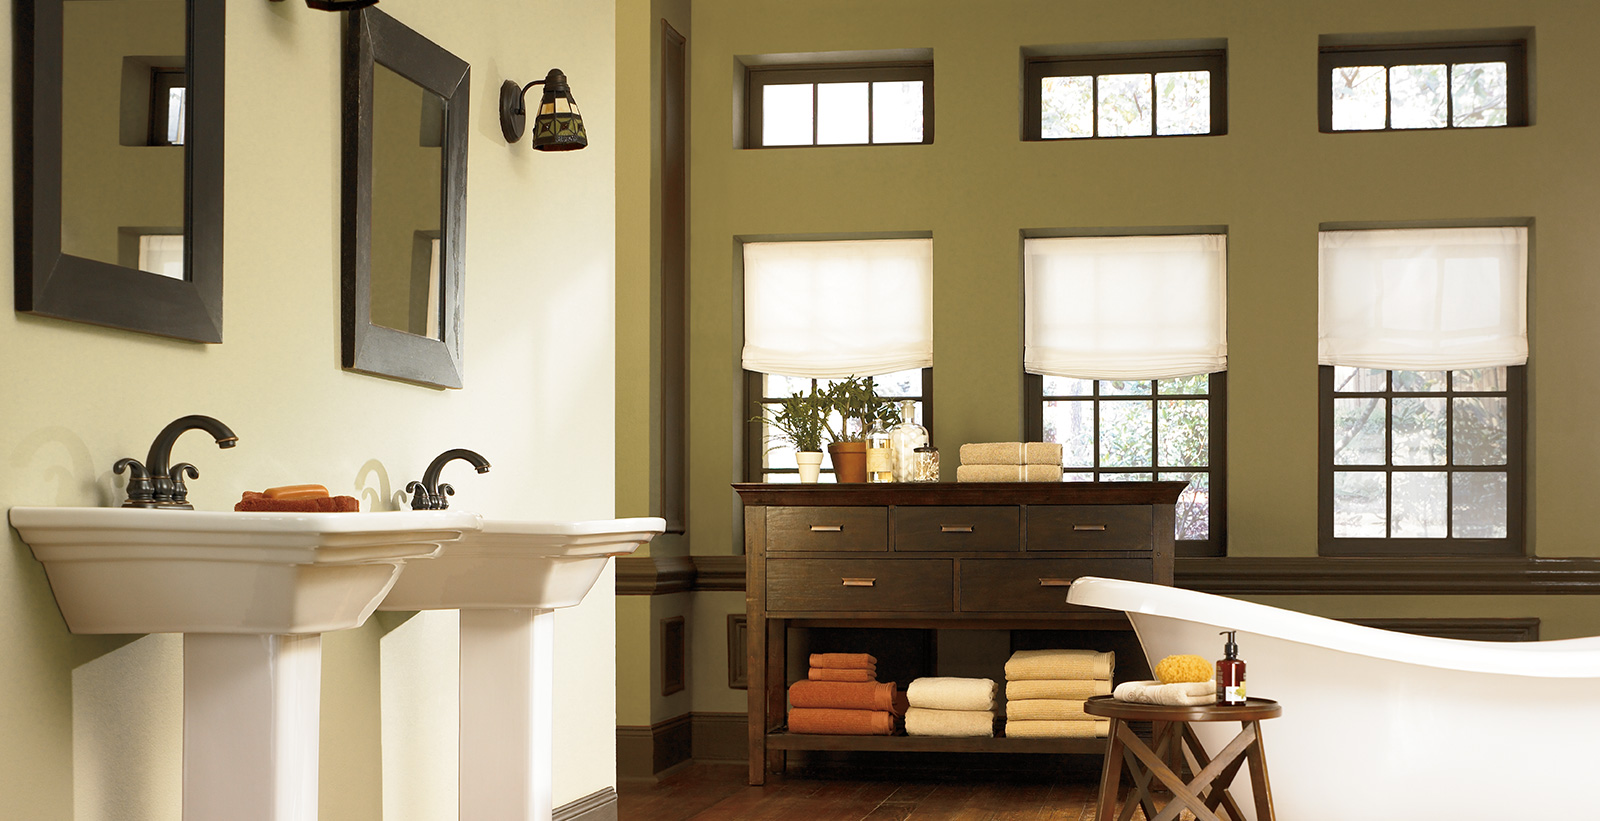 Casual styled bathroom with tan and green walls, brown trim, brown vanity, dual sinks, and square mirrors.